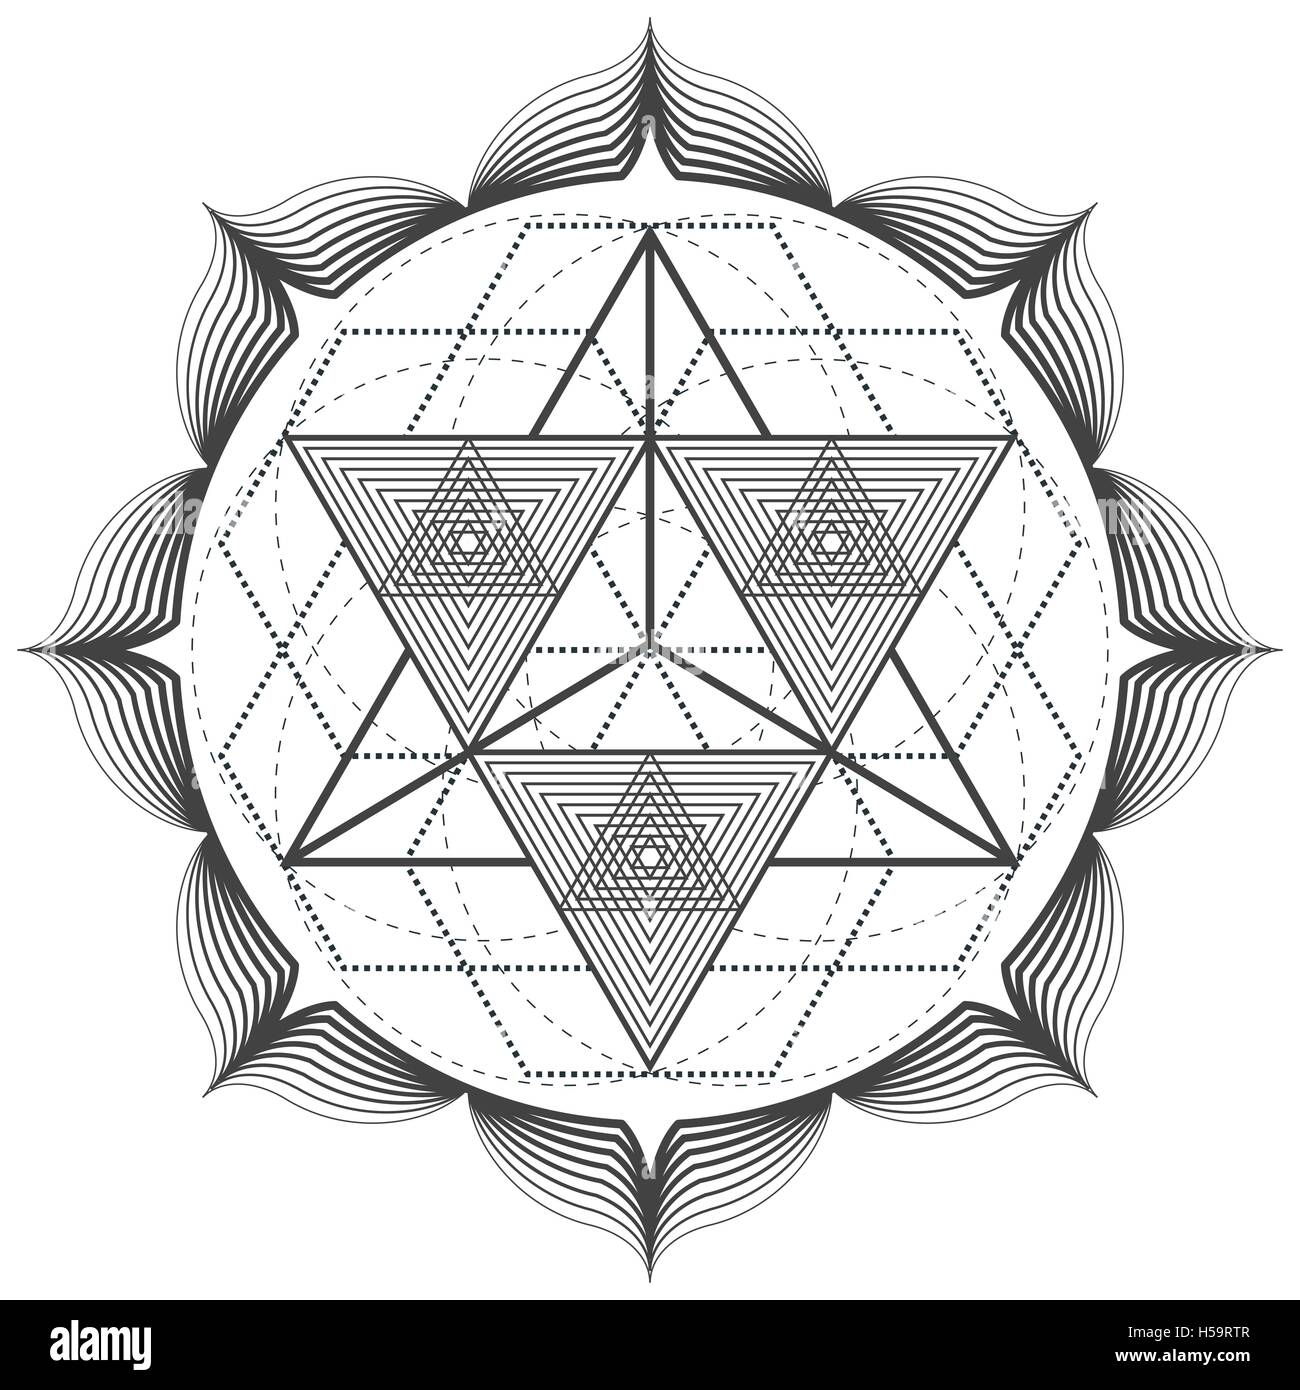 vector contour monochrome design mandala sacred geometry illustration merkaba triangles lotus isolated white background - Stock Image